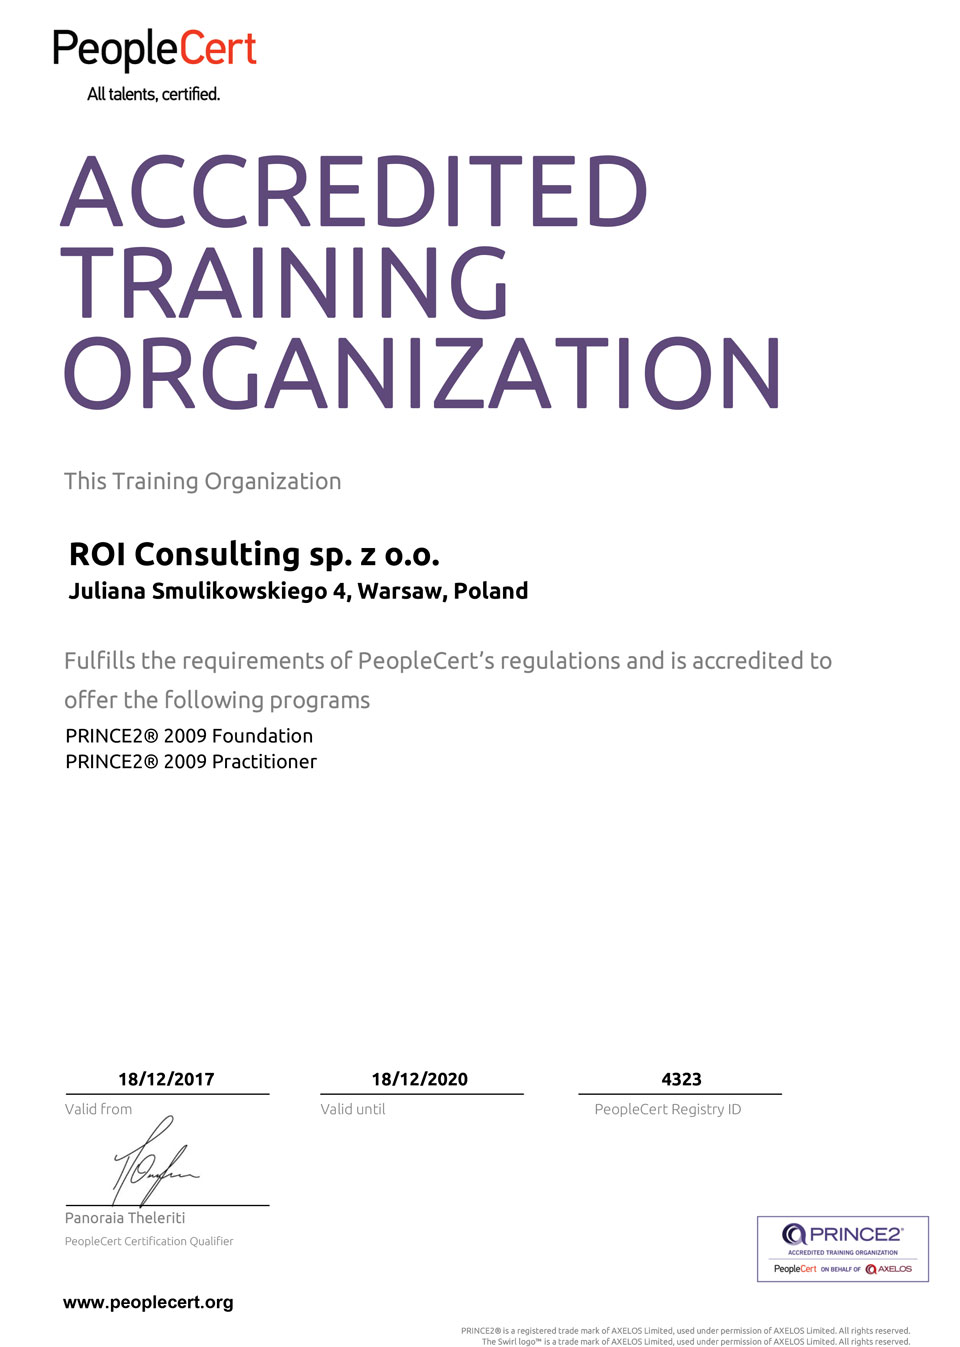 Accredited Training Organization PRINCE2